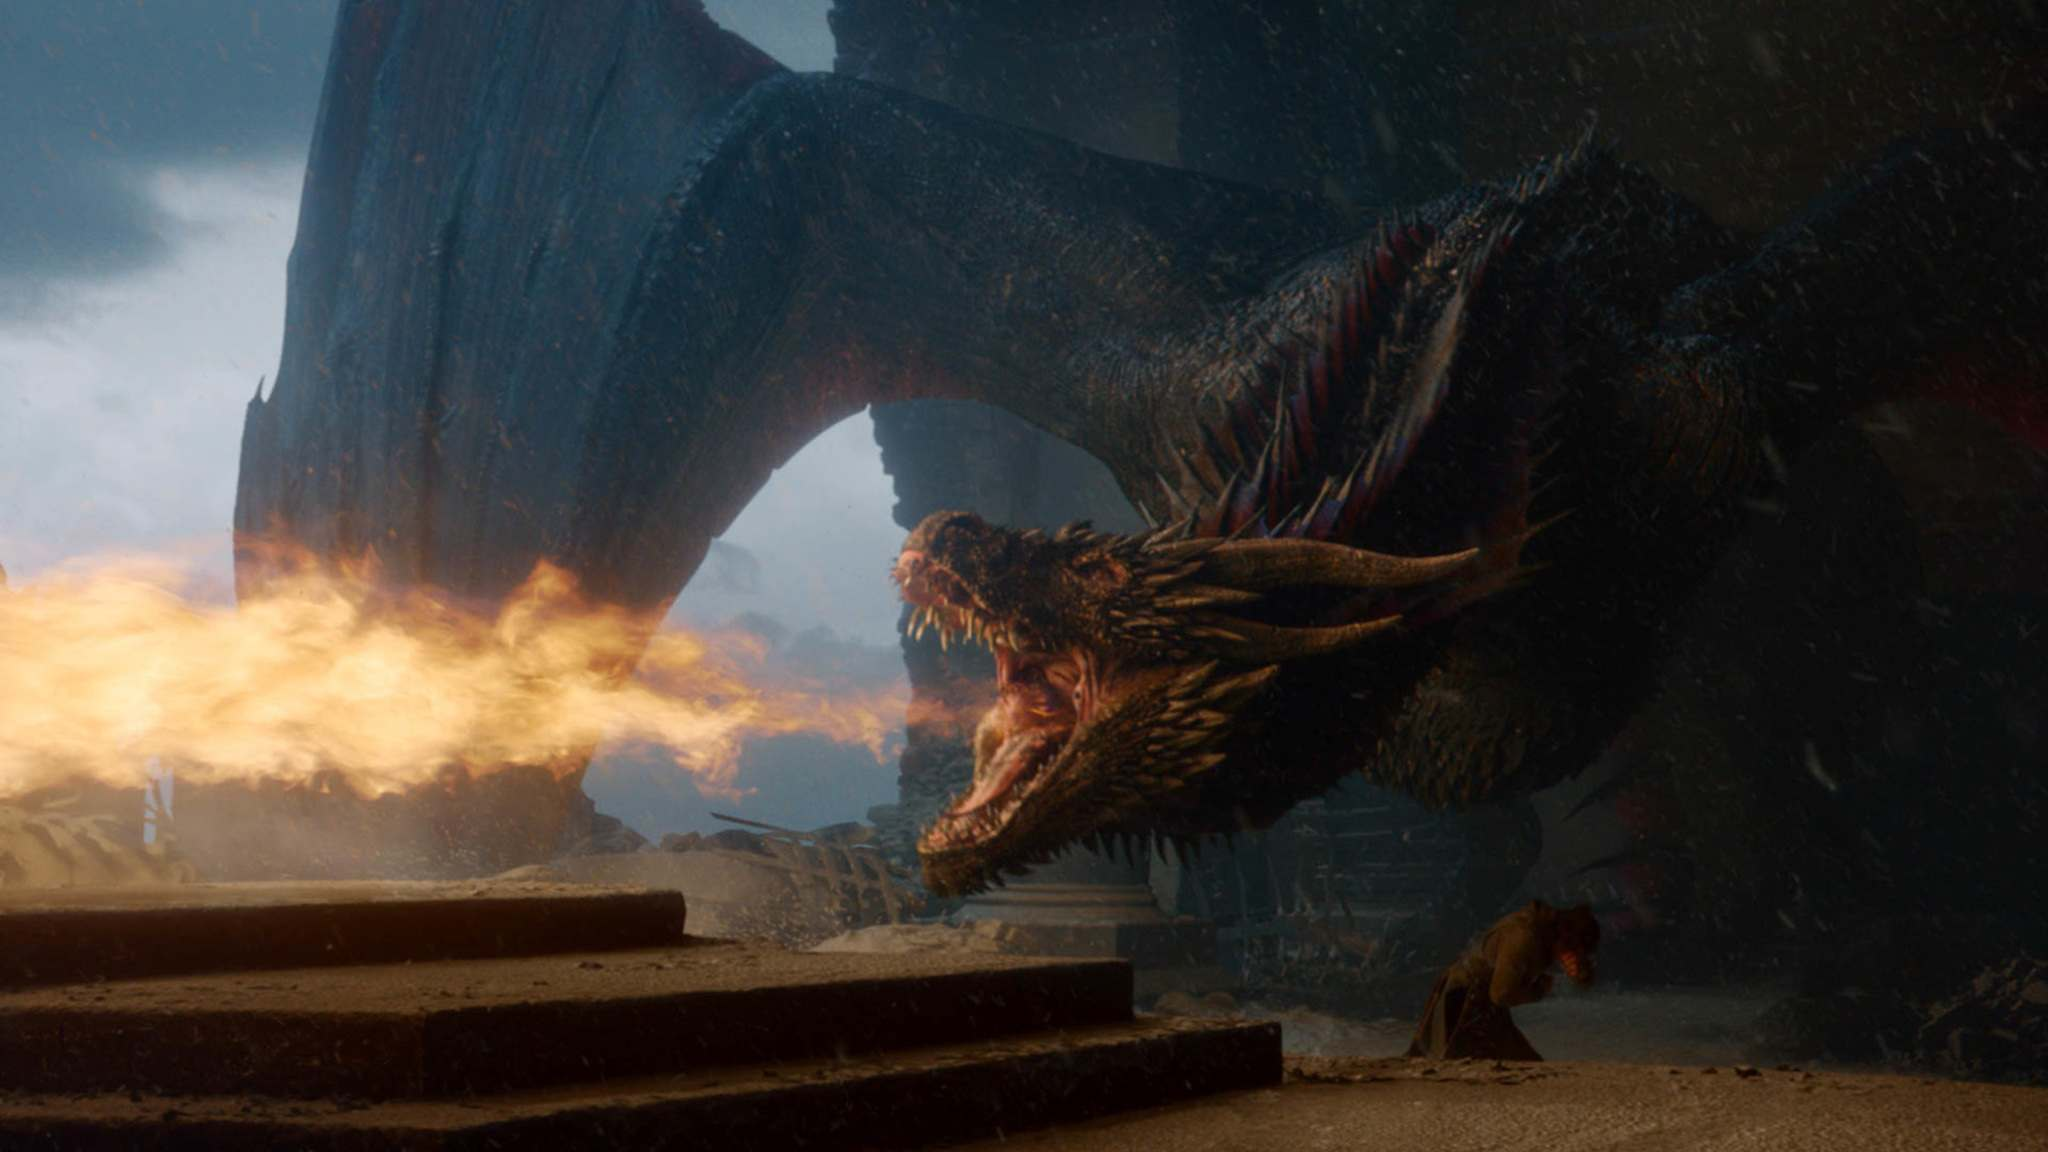 Drogon melts the Iron Throne in a fit of dragon rage. (HBO)